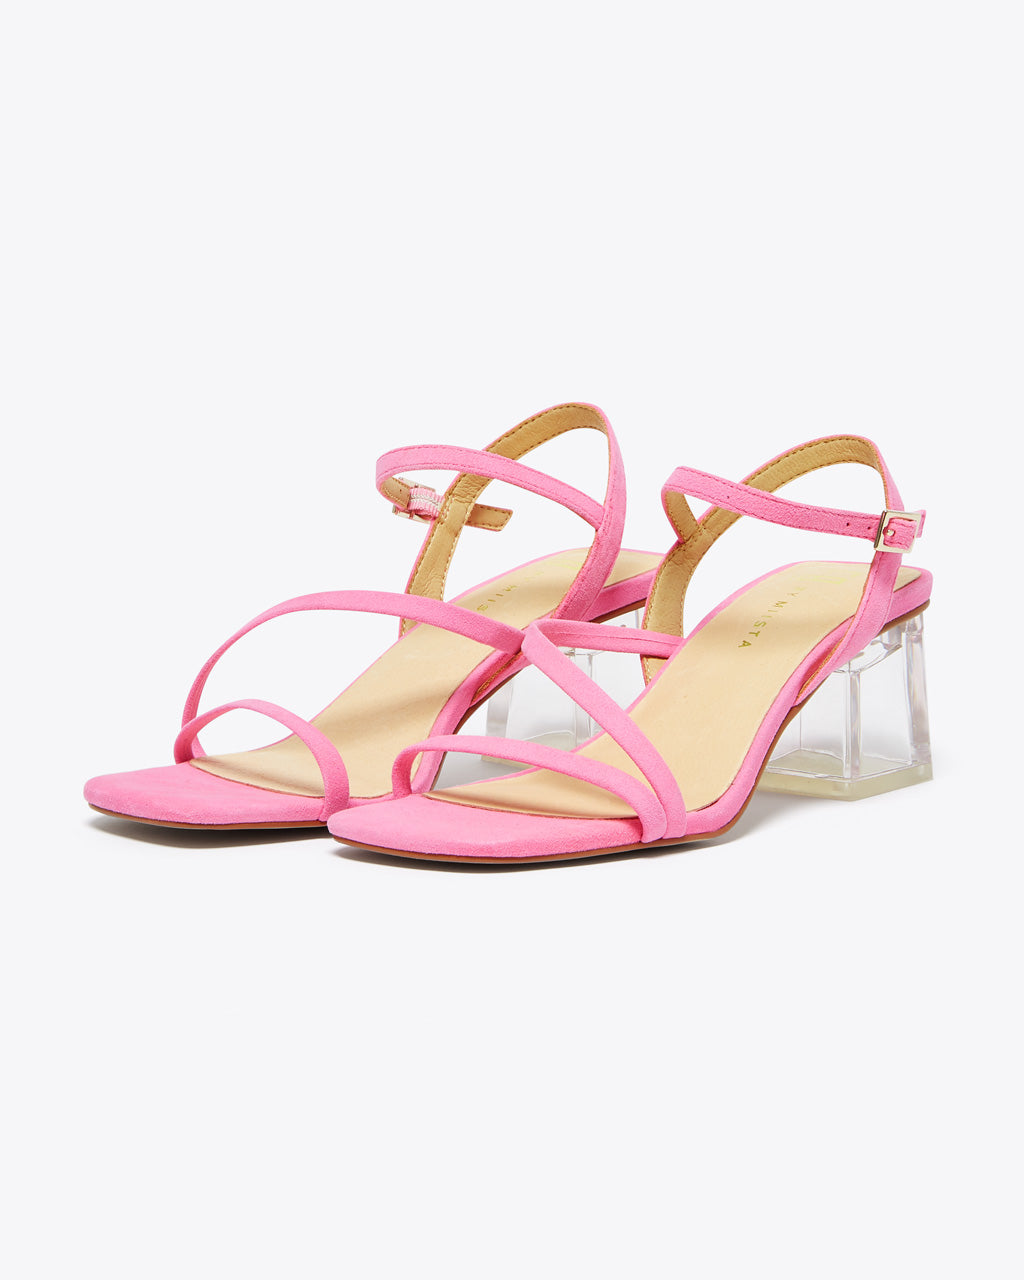 pink strap heels with a clear block heel